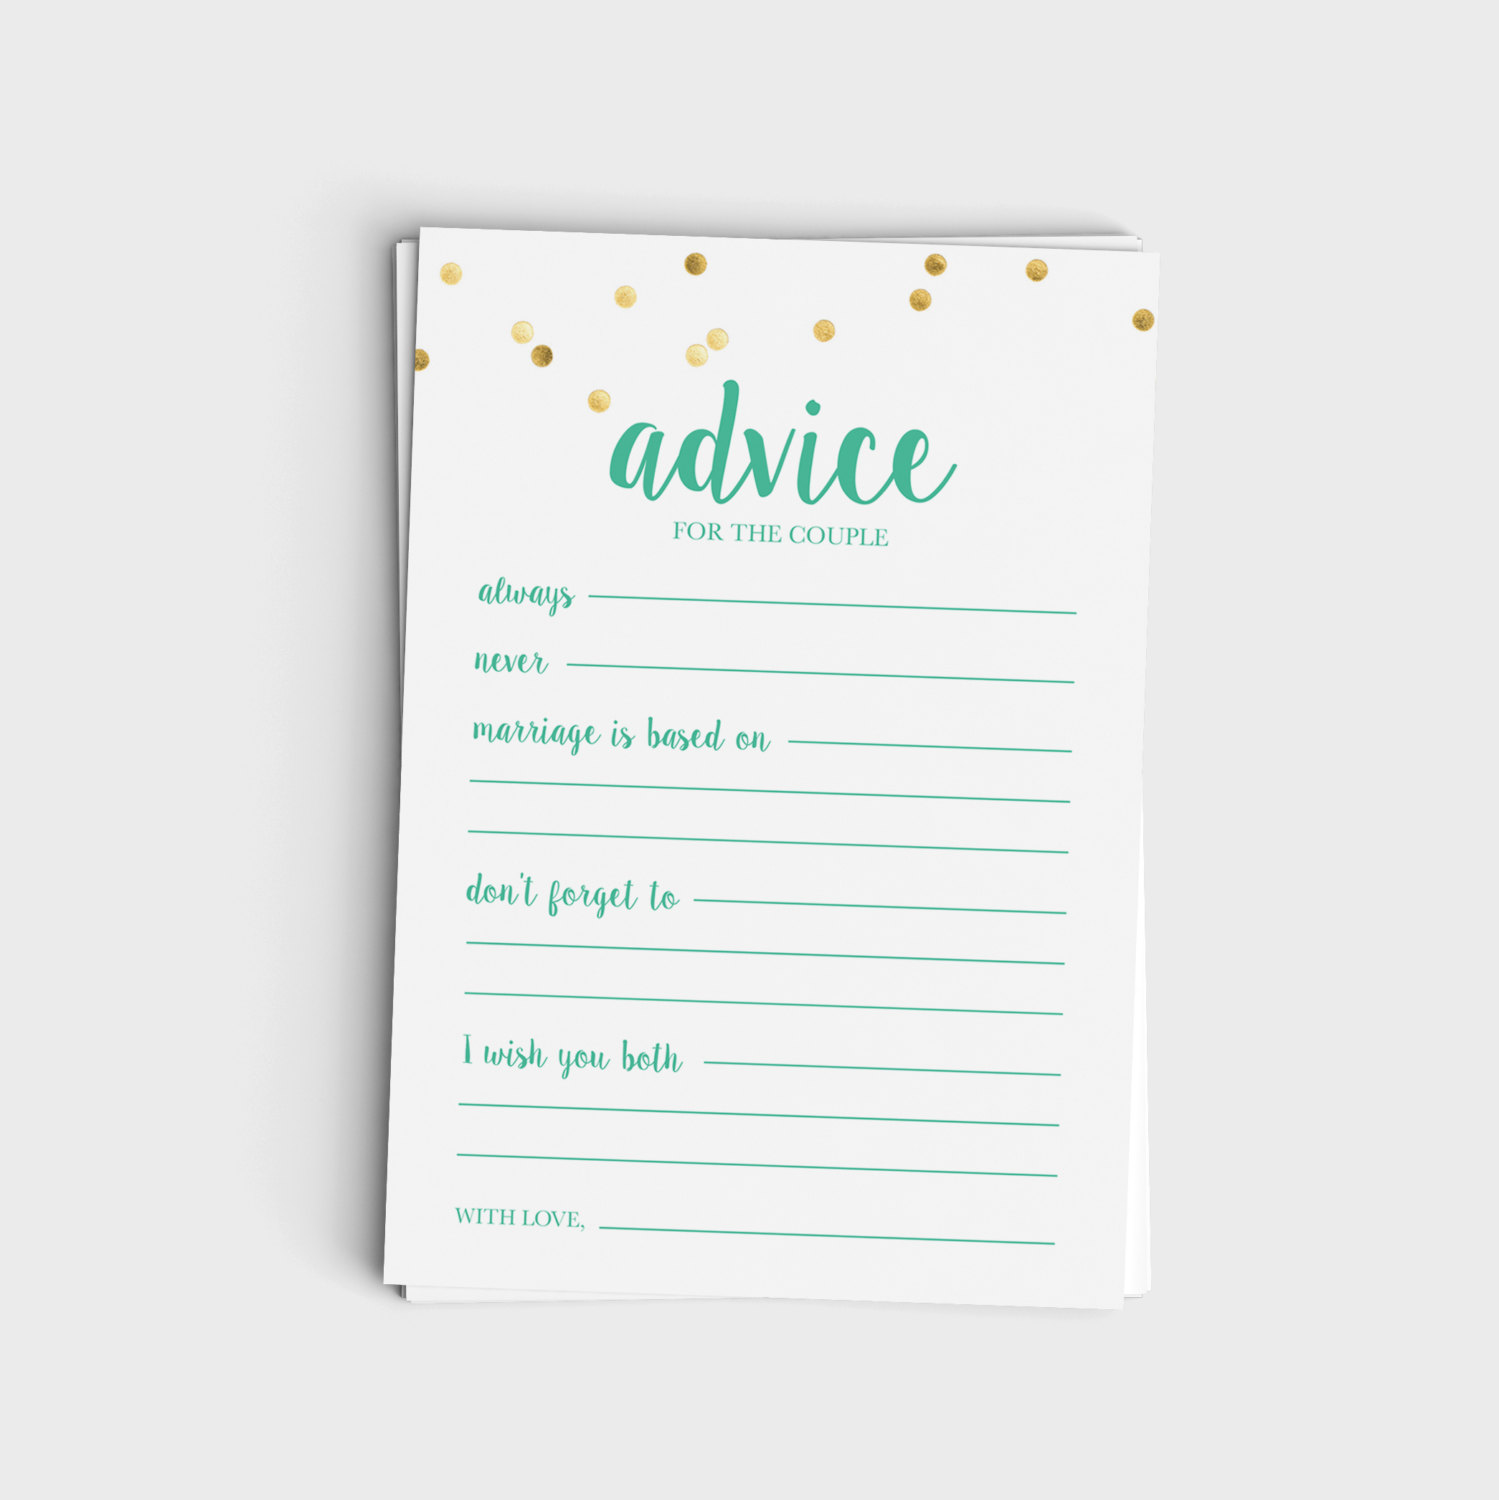 Advice for the Couple - Mint & Glitter Design